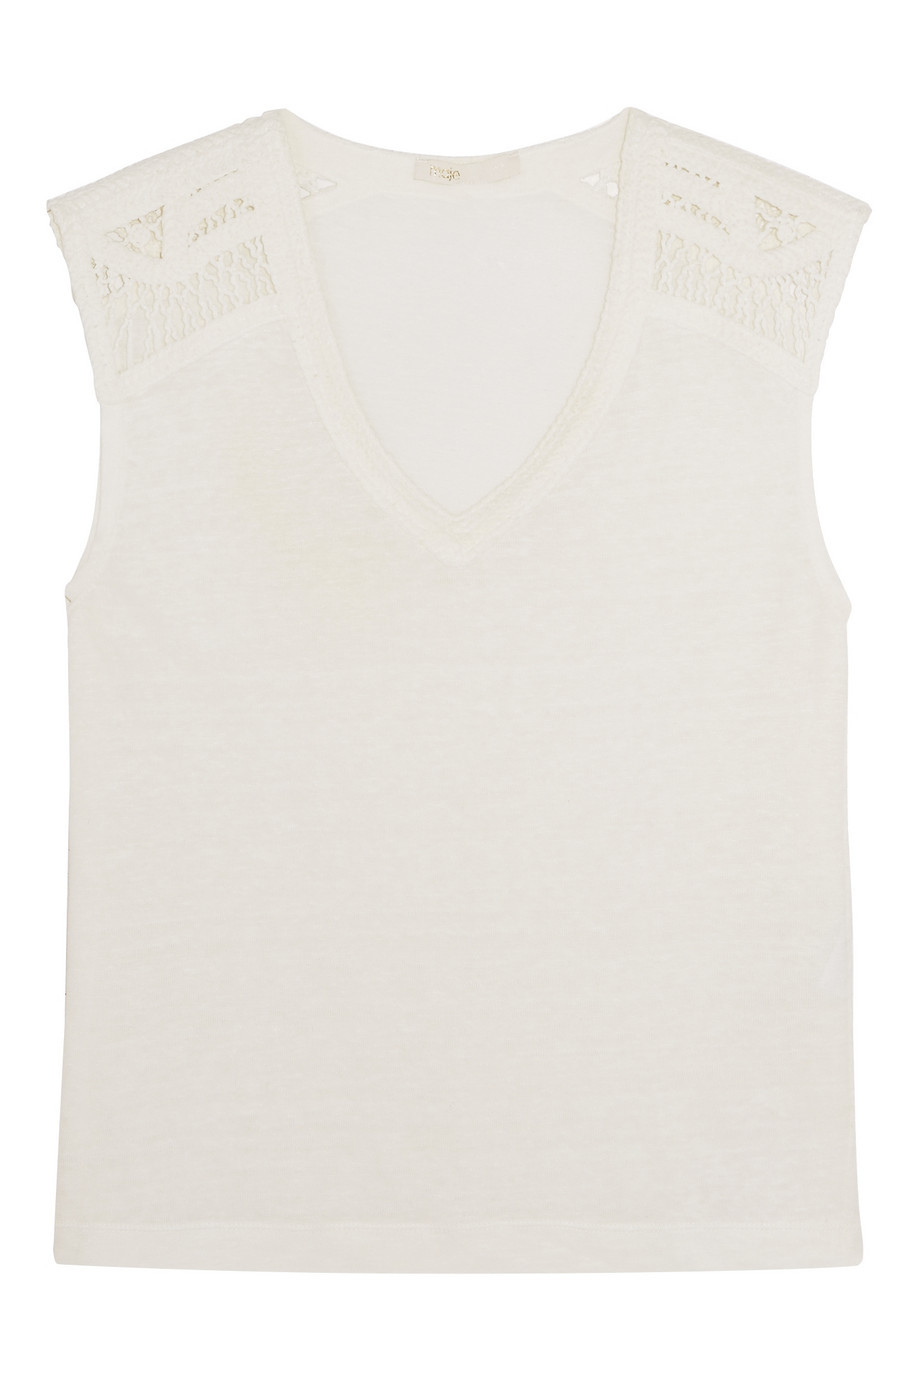 Taz Linen And Cotton Blend Top Ecru - neckline: v-neck; pattern: plain; sleeve style: sleeveless; length: below the bottom; predominant colour: white; occasions: casual; style: top; fibres: linen - mix; fit: body skimming; sleeve length: sleeveless; texture group: linen; pattern type: fabric; season: s/s 2016